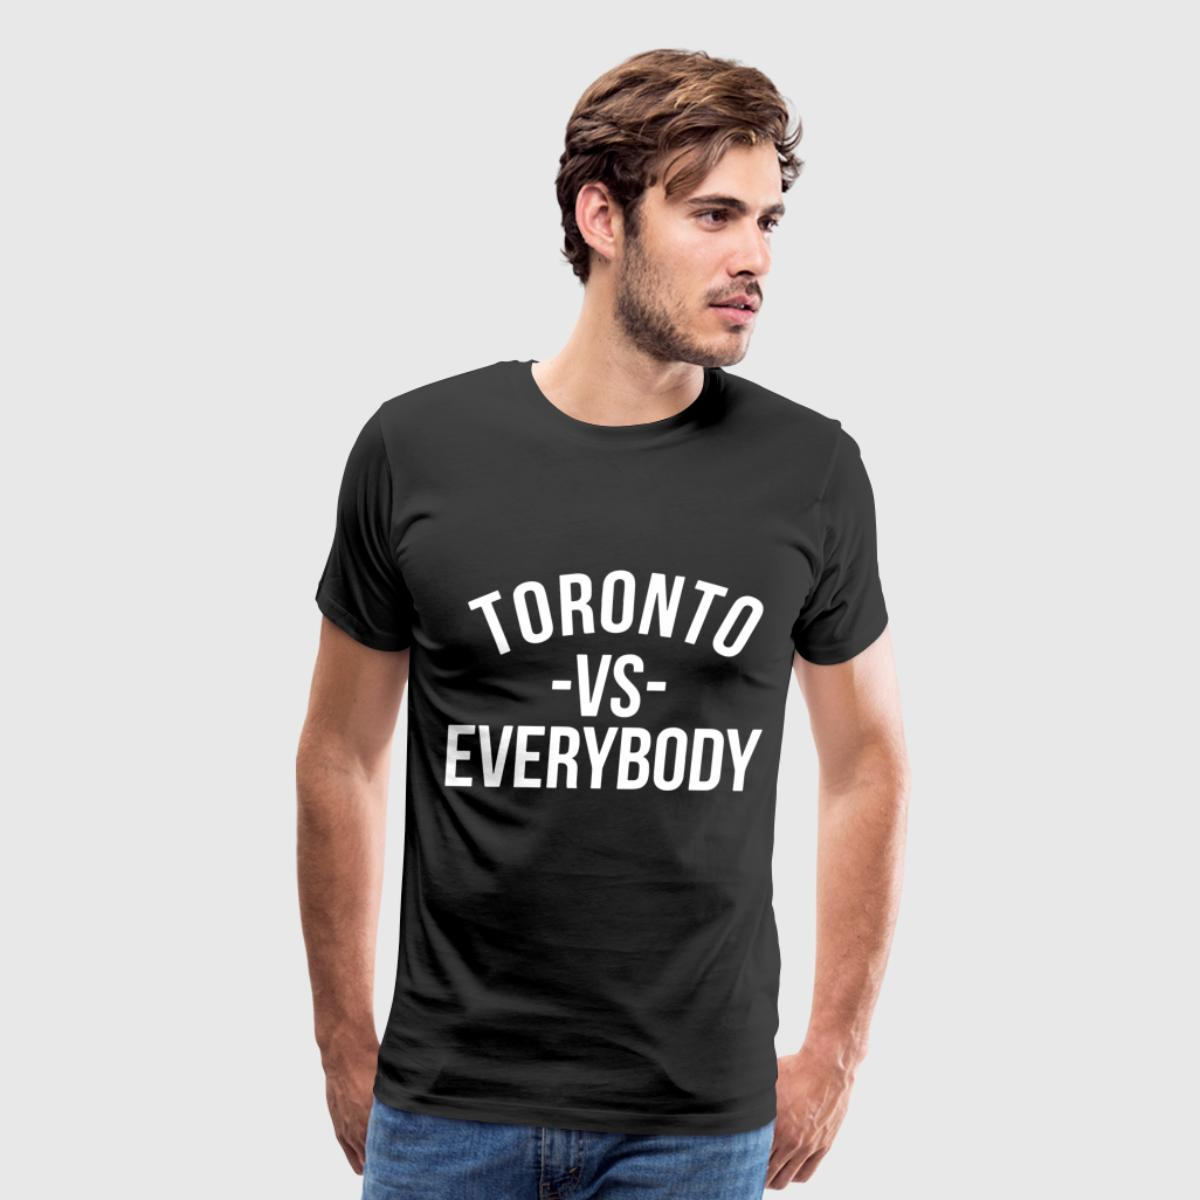 Custom Embroidered Shirts Toronto - Joe Maloy e3355f1737d9